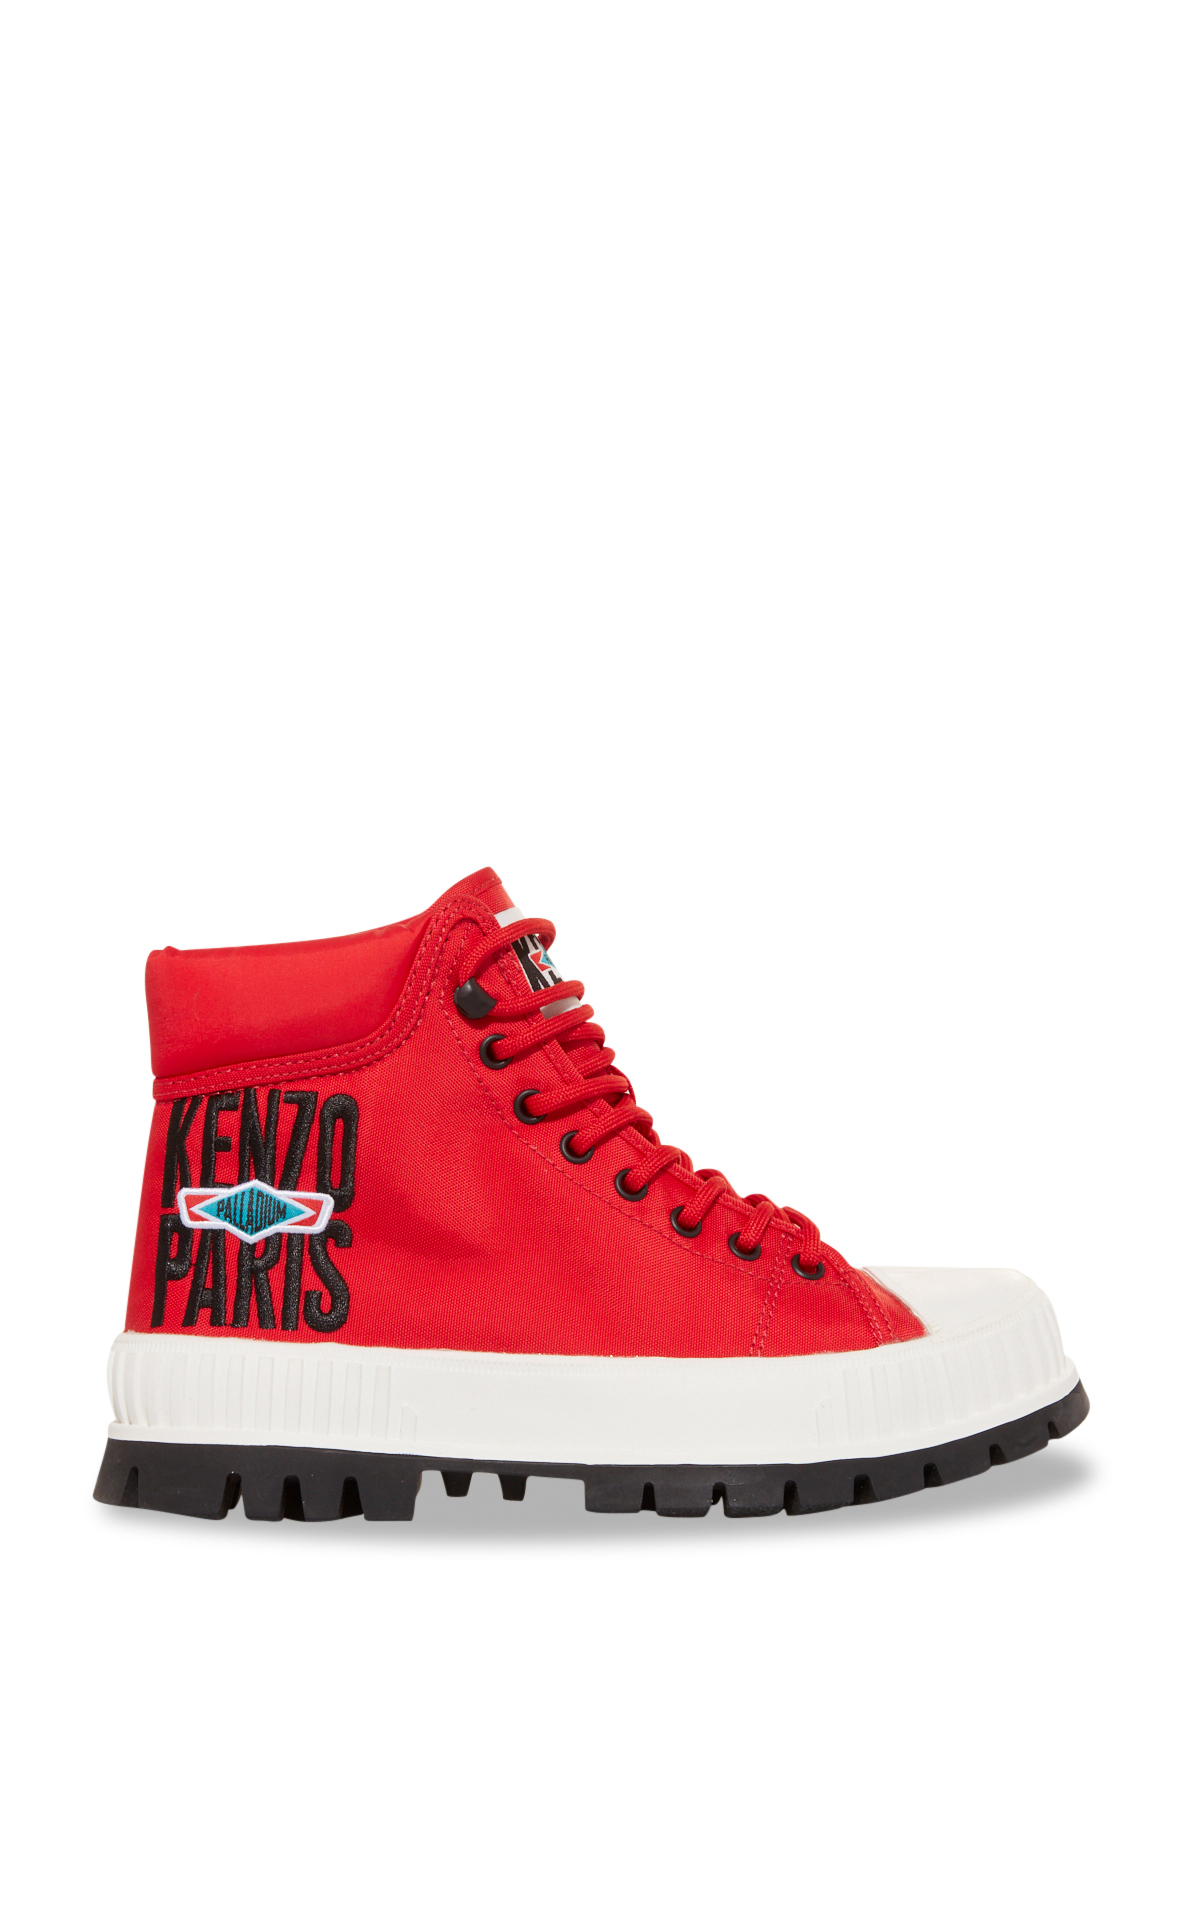 La Vallée Village Kenzo Red high-top shoes